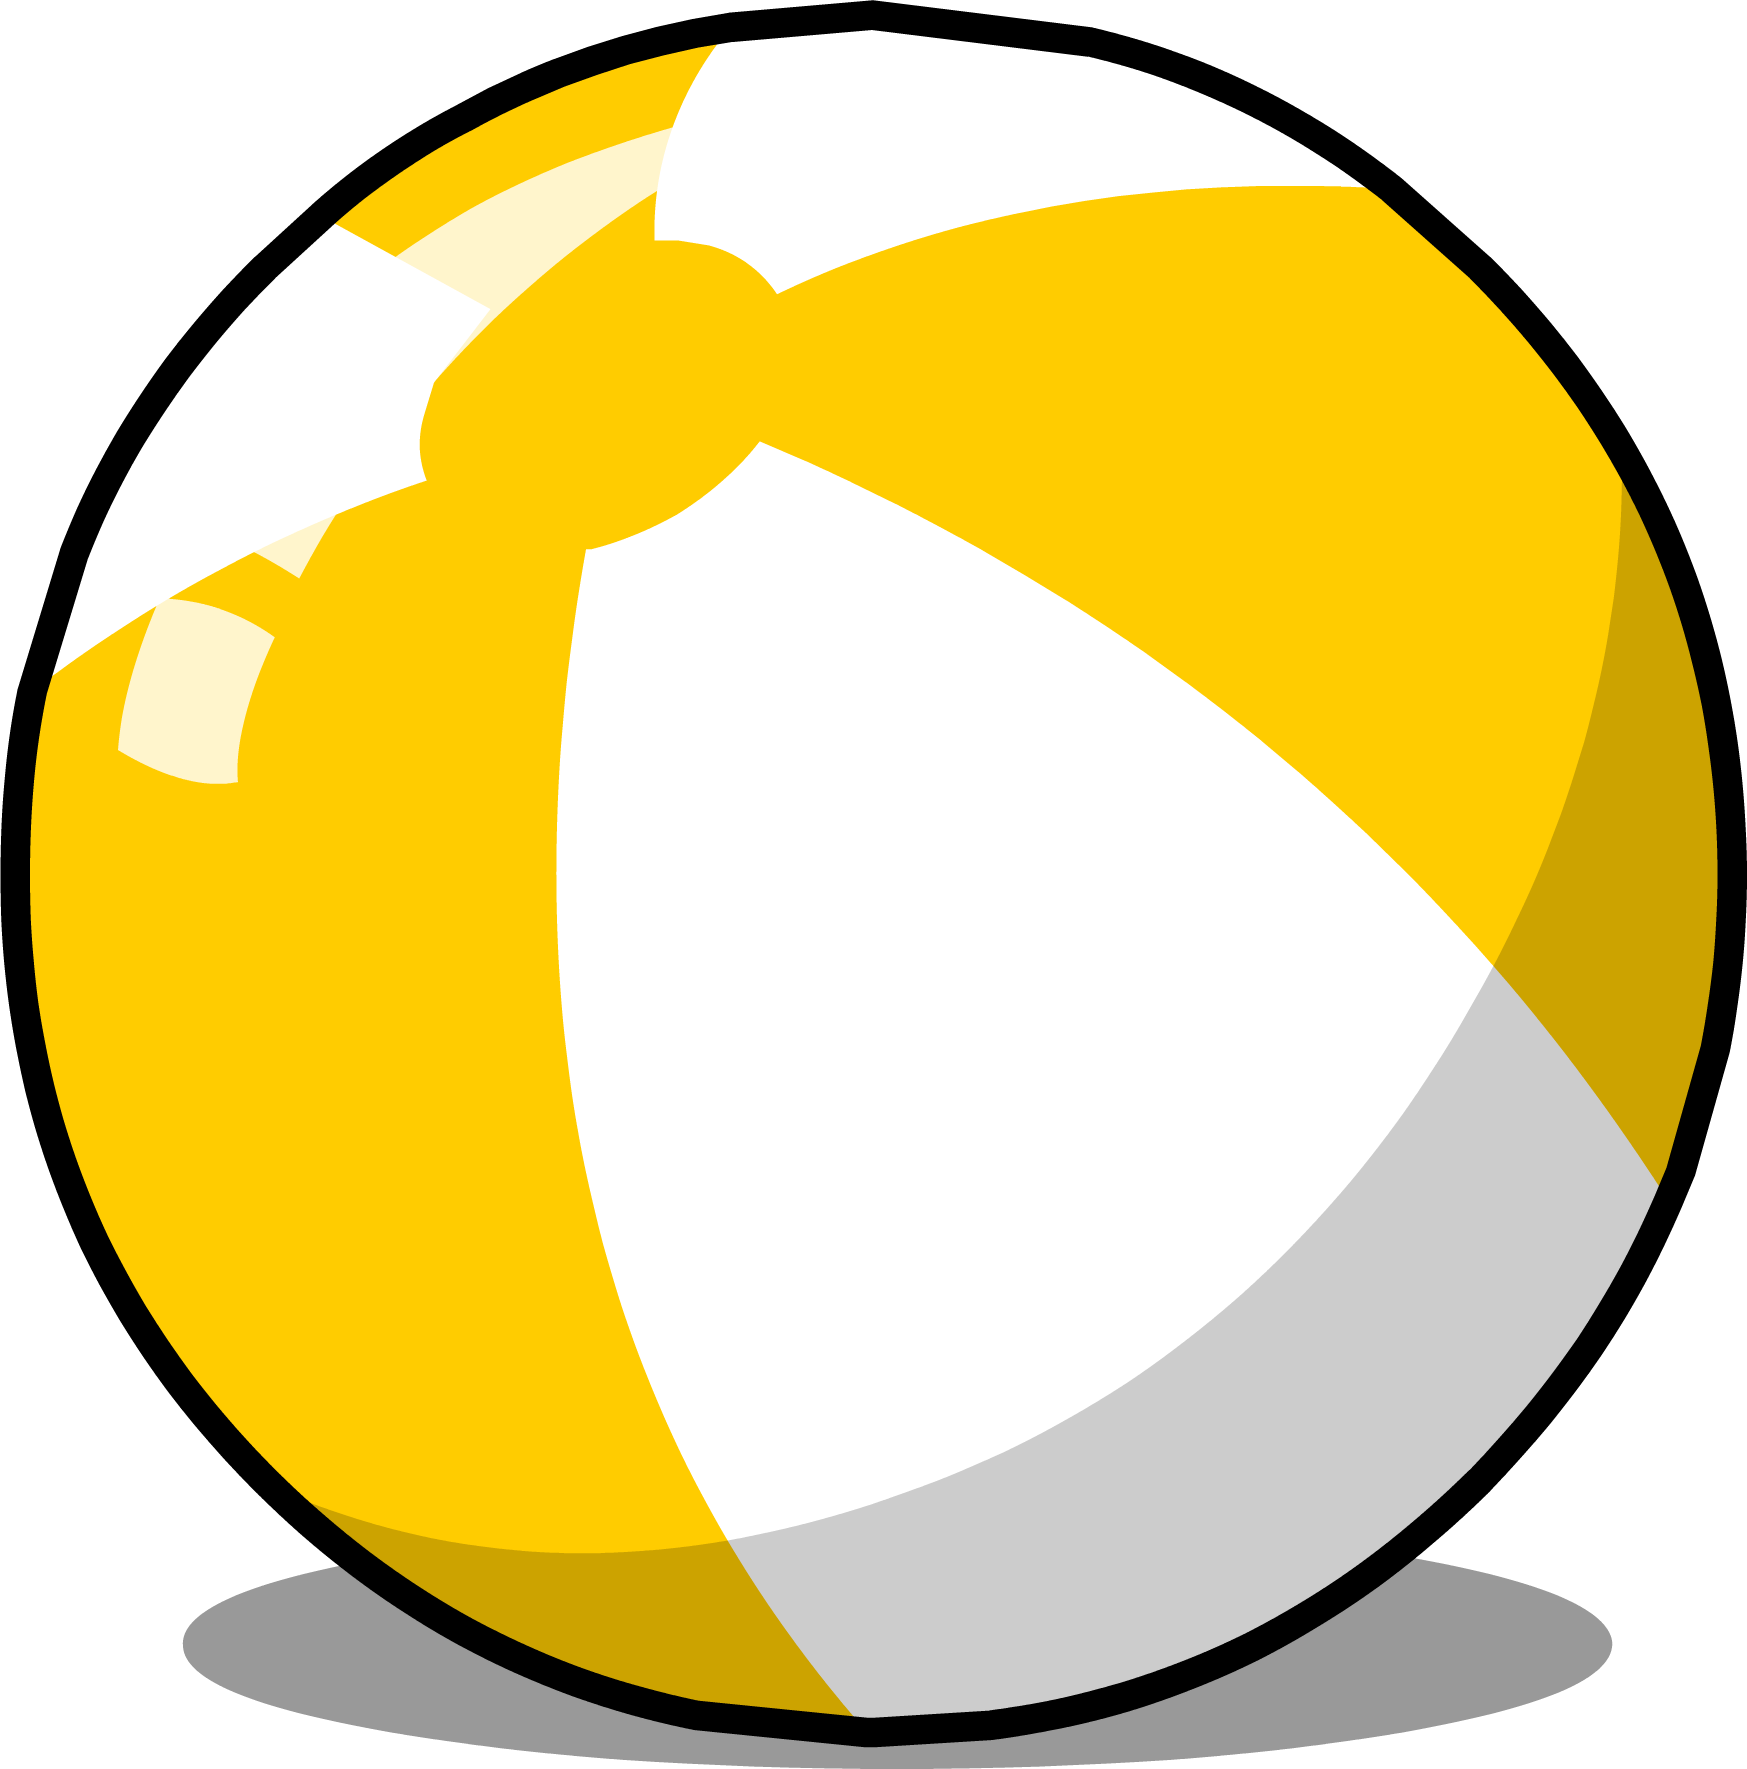 Image beach club penguin. Ball sprite png graphic transparent download